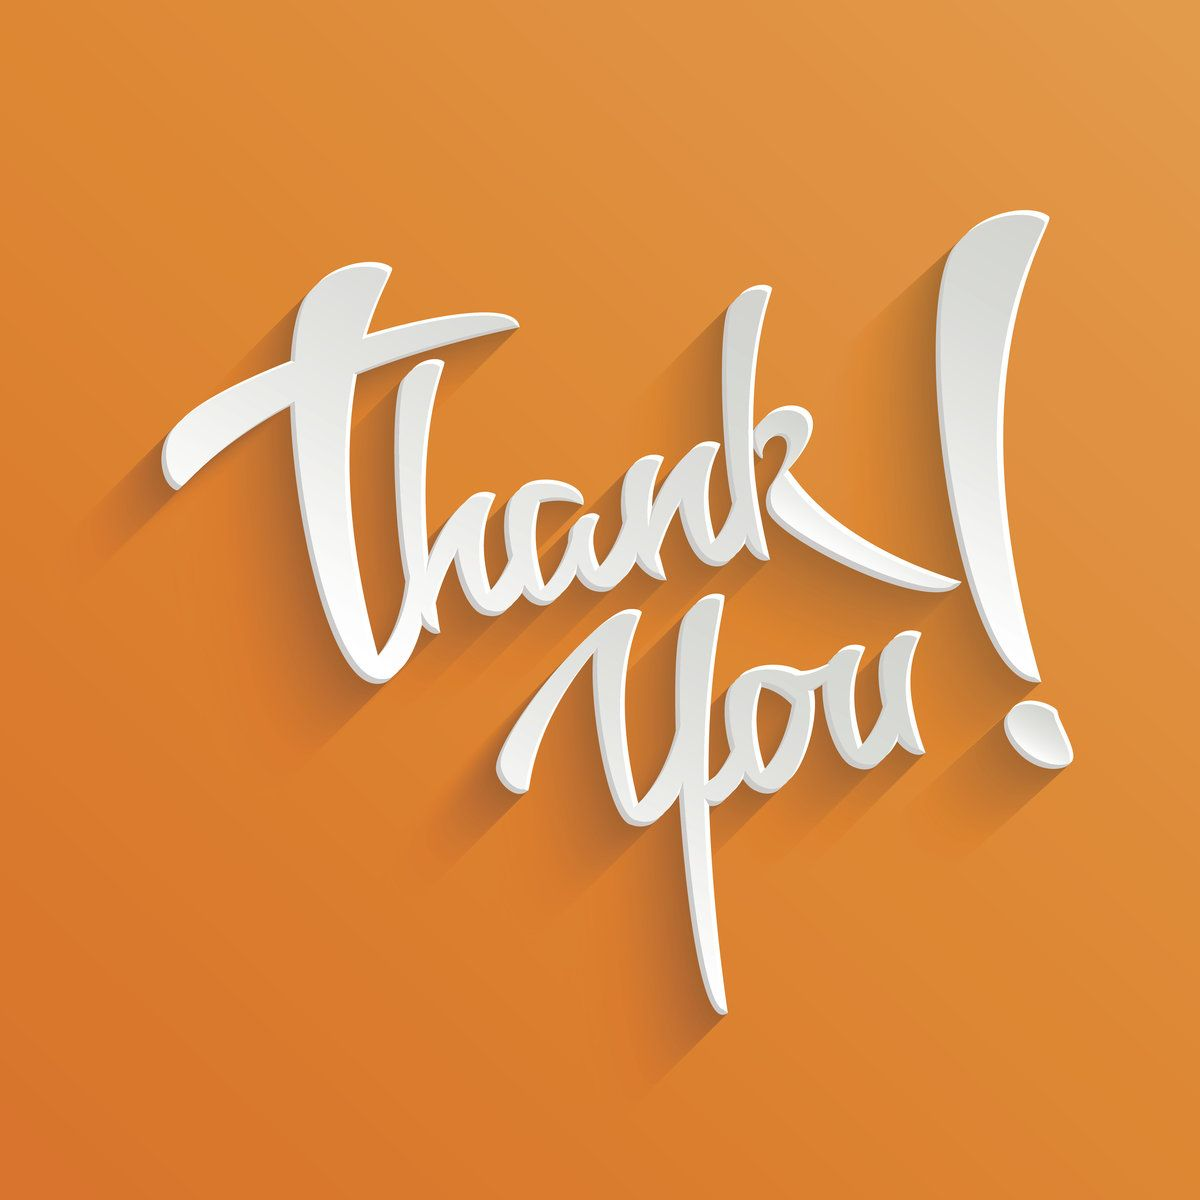 We want to recognize our faculty and staff and say thank you we we want to recognize our faculty and staff and say thank you we appreciate all kristyandbryce Choice Image